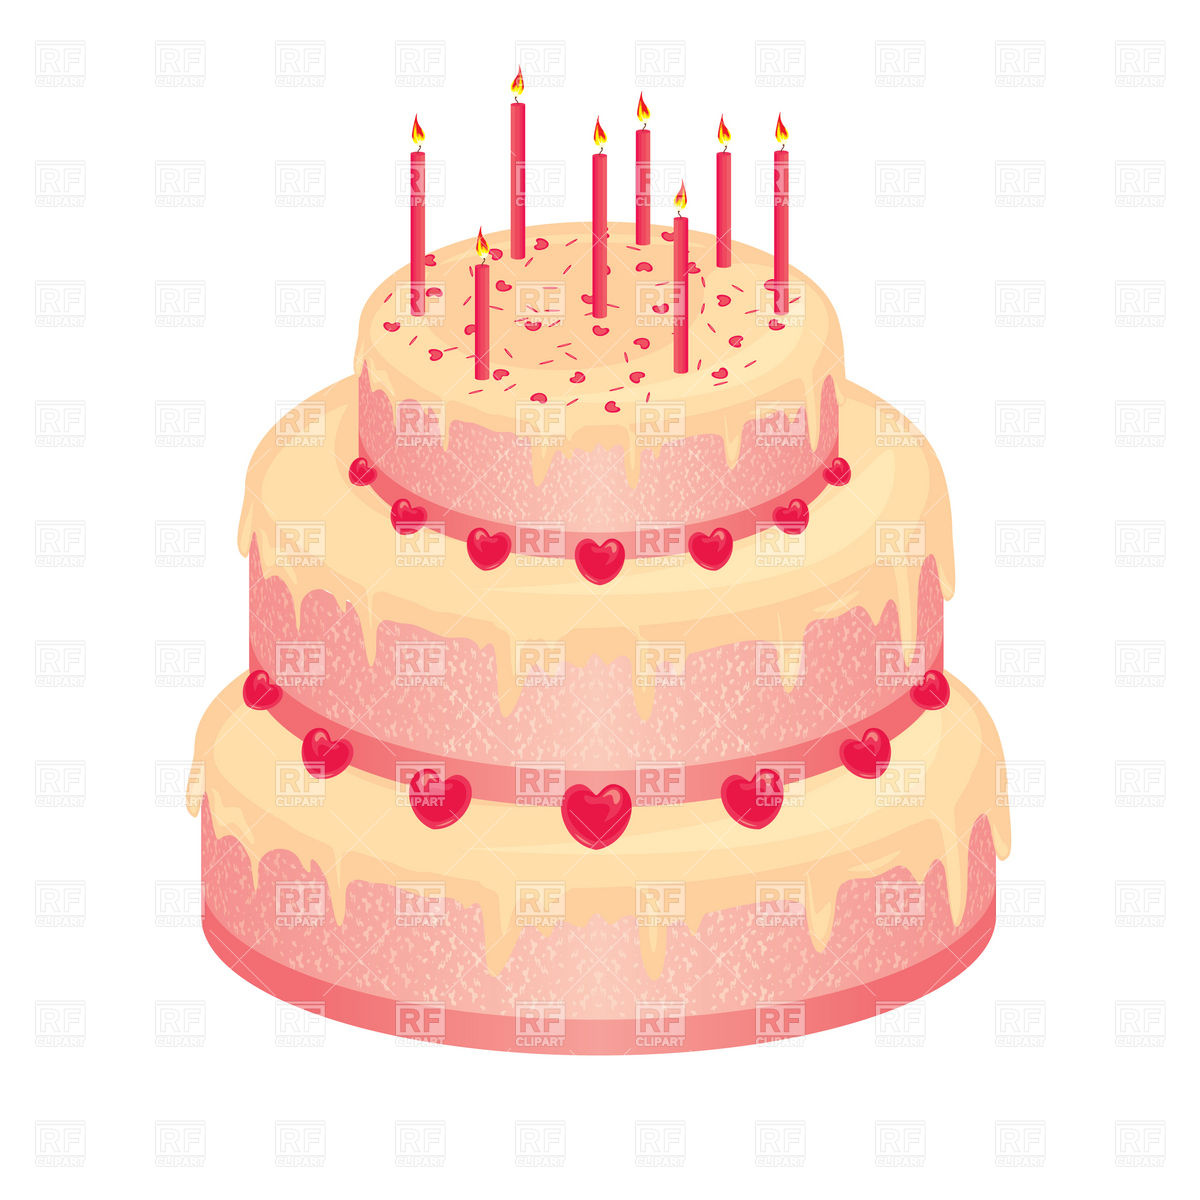 1200x1200 Sweet Pink Wedding Cake With Candles Vector Image Vector Artwork